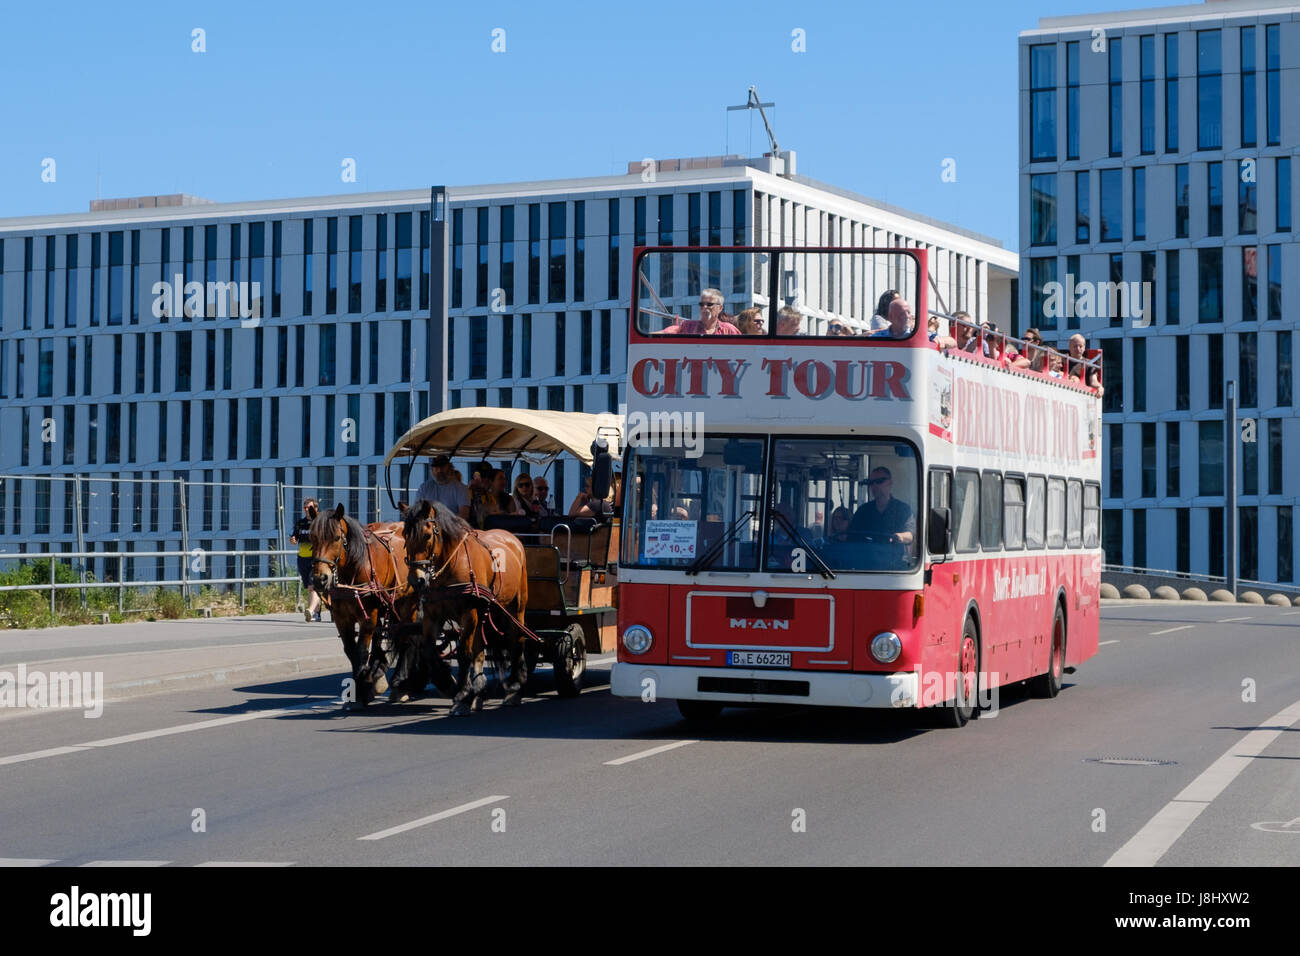 Berlin, Germany - may 27, 2017: A doubledecker sightseeing busand a horse carriage  doing a sightseeing busin Berlin - Stock Image